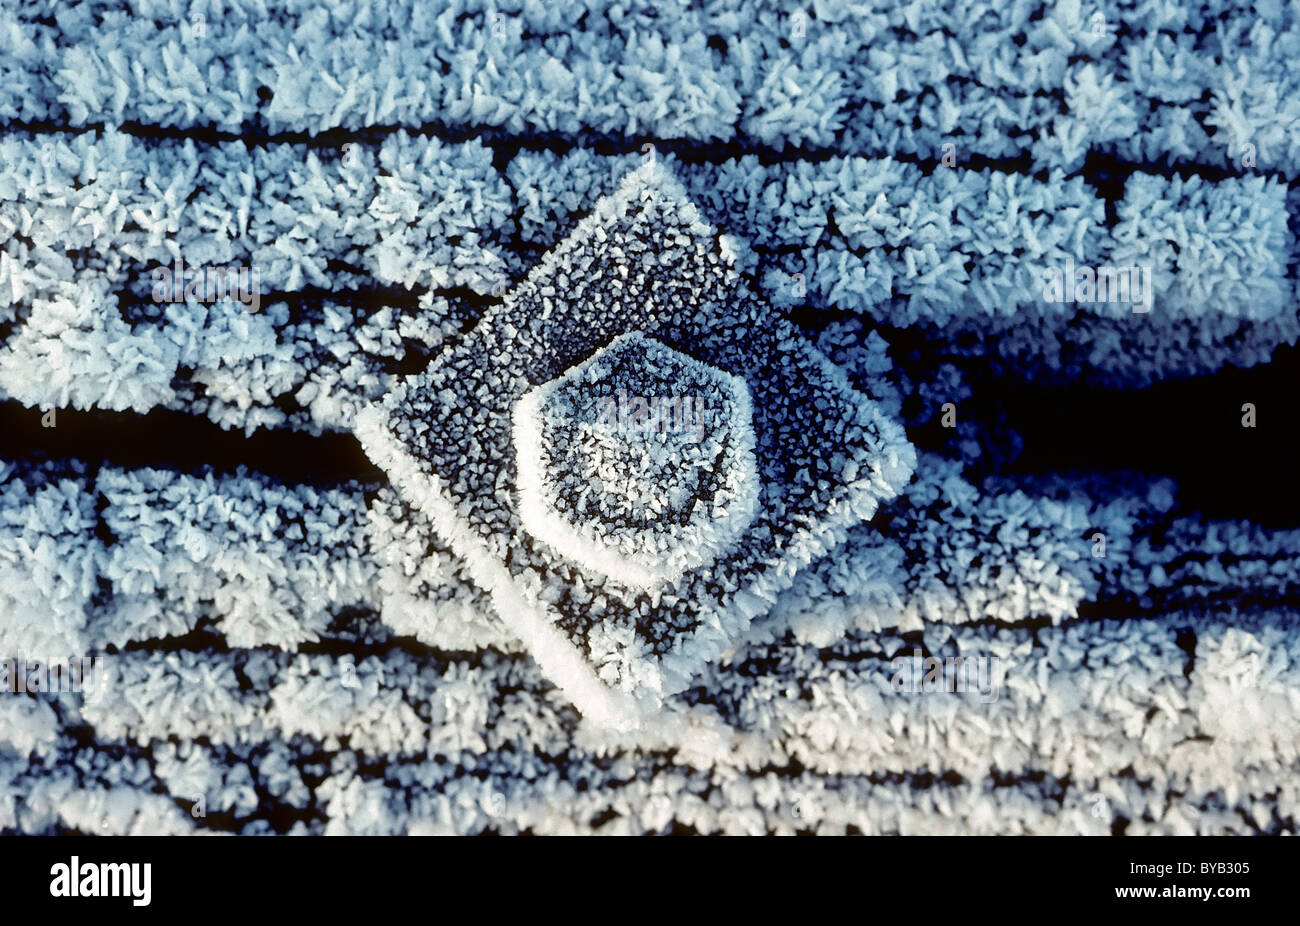 Thick bolt with a washer screwed into a wooden beam, covered in hoar frost, industrial ruin - Stock Image